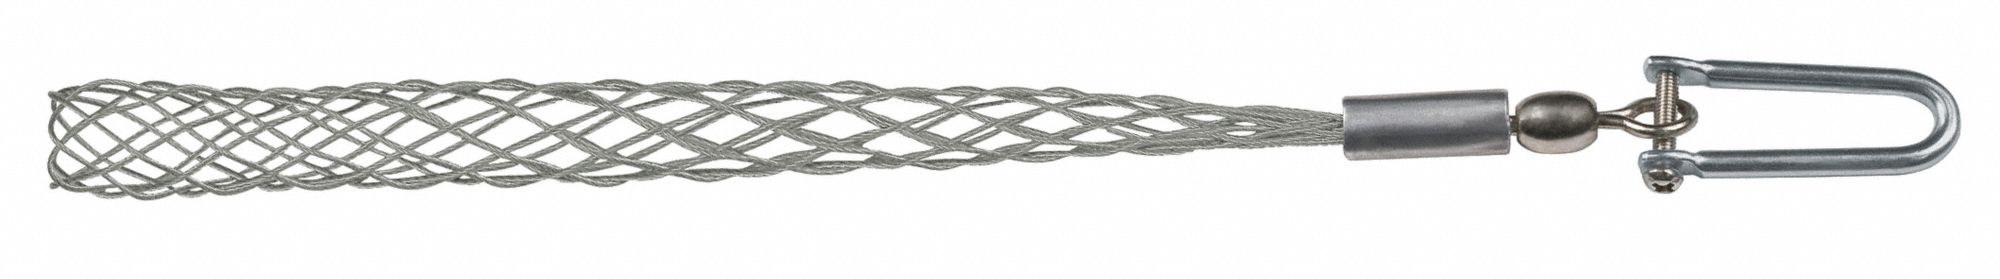 Cable Pulling Mesh Grips